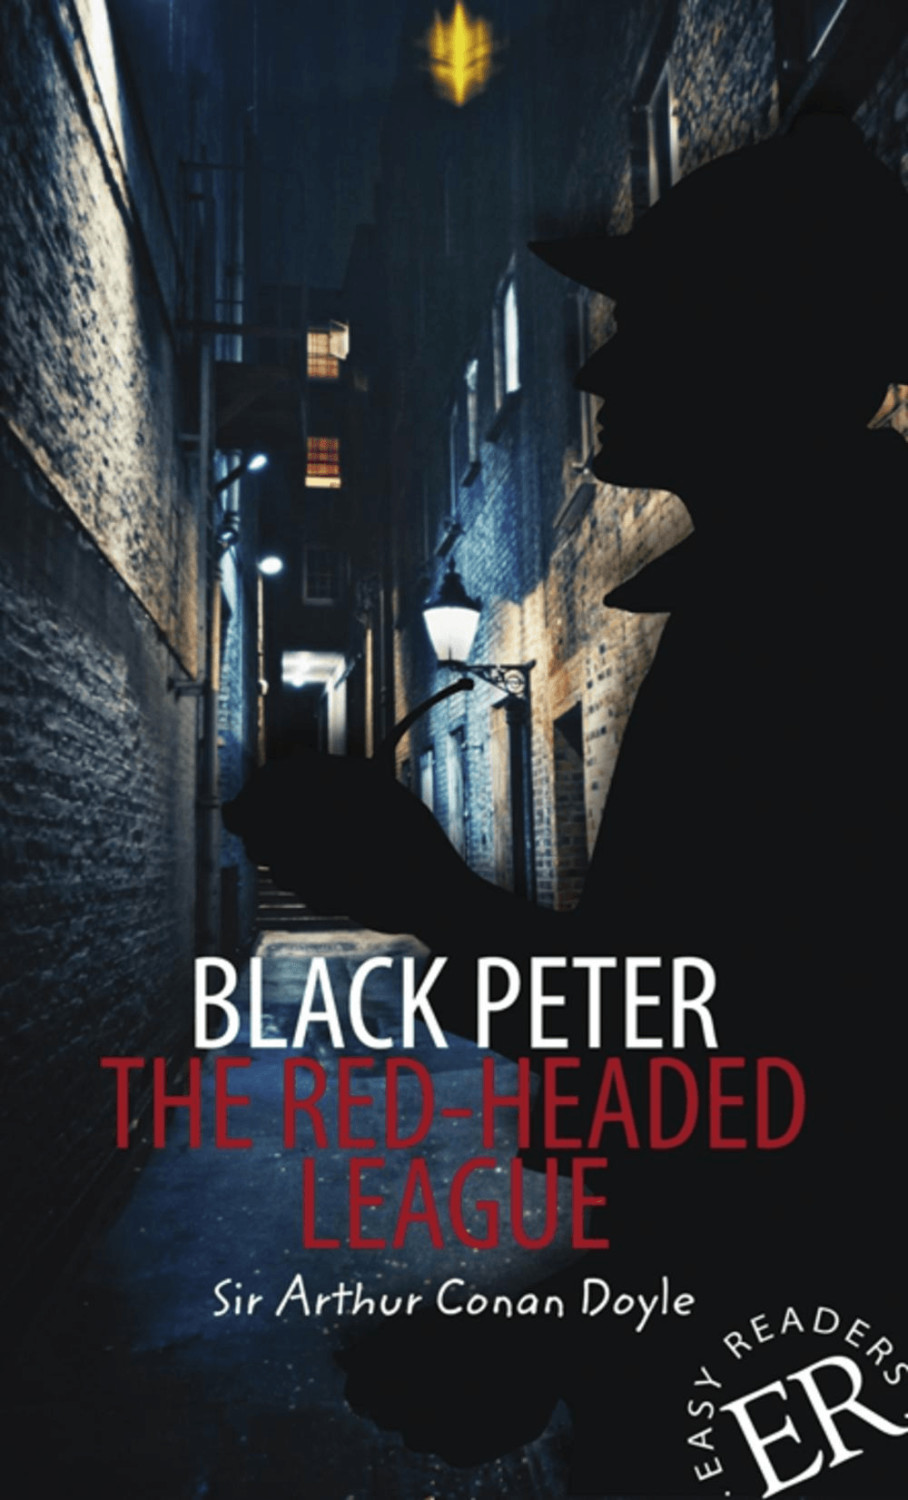 Black Peter. The Red-Headed League